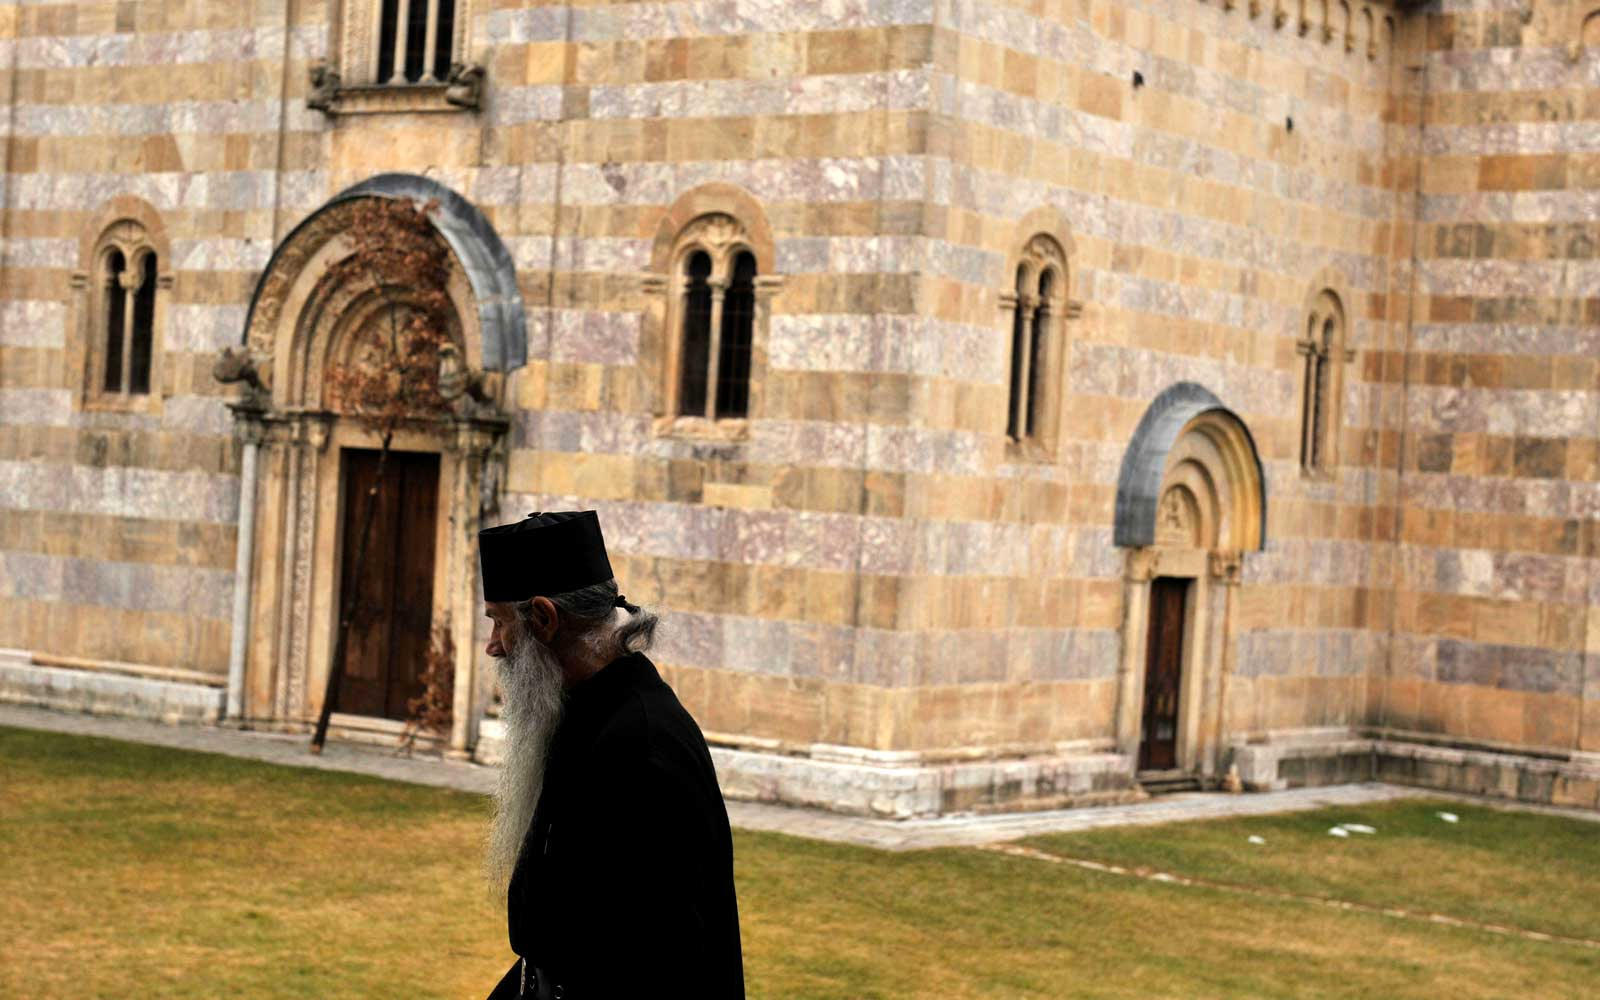 You Can Drink Homemade Spirits With Serbian Monks at These Orthodox Monasteries